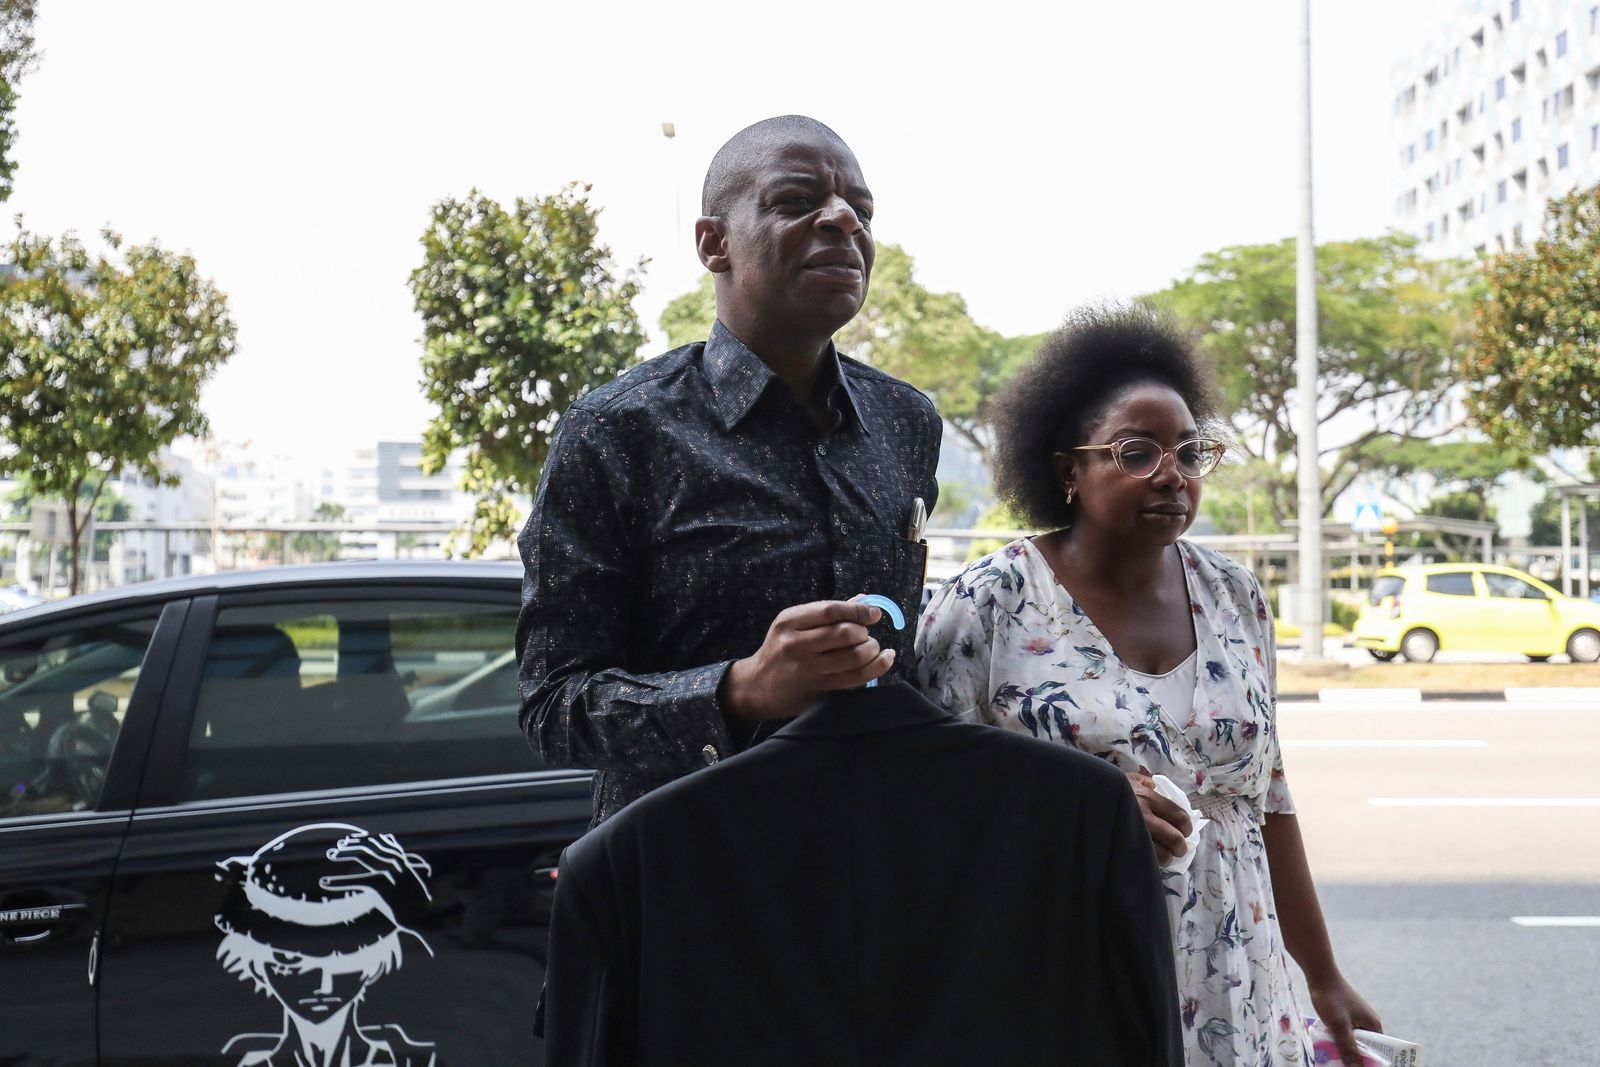 Adam Molai, left, and a relative arrive at the Singapore Casket funeral parlor building where the body of the late former president of Zimbabwe is being held on Saturday, Sept. 7, 2019, in Singapore.{ } (AP Photo/Danial Hakim)